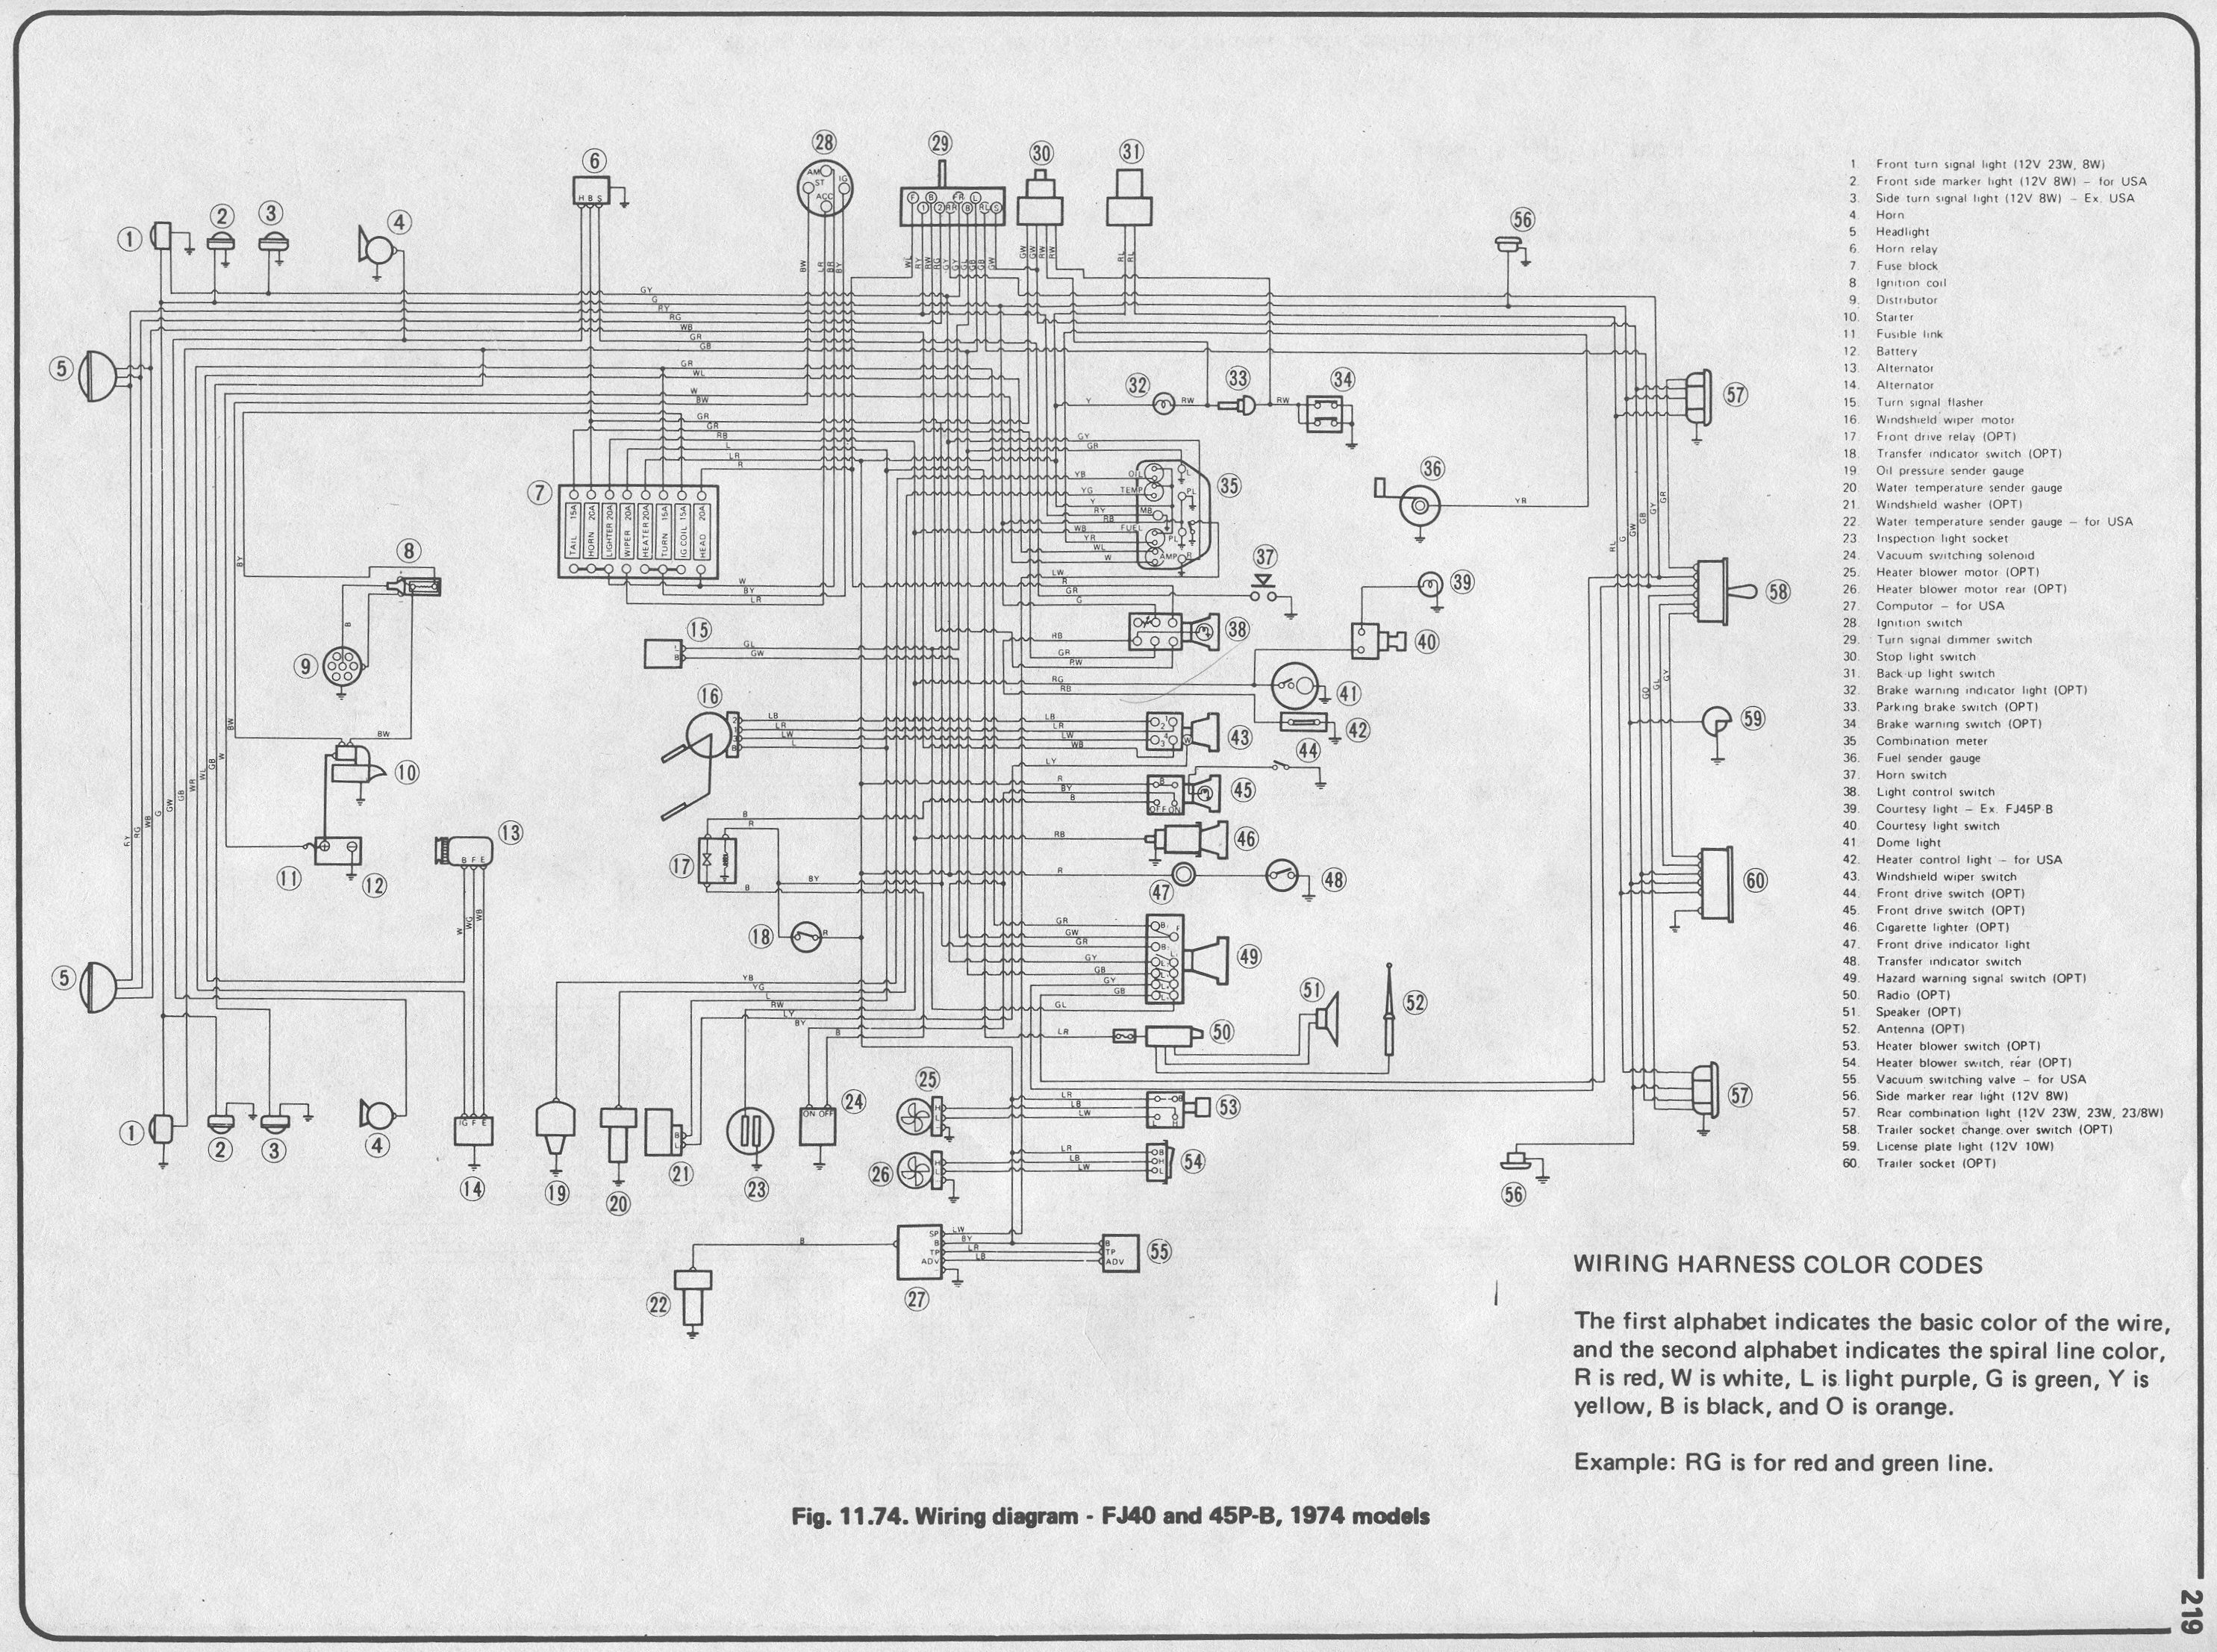 toyota bj42 wiring diagram auto electrical wiring diagram u2022 rh 6weeks co uk